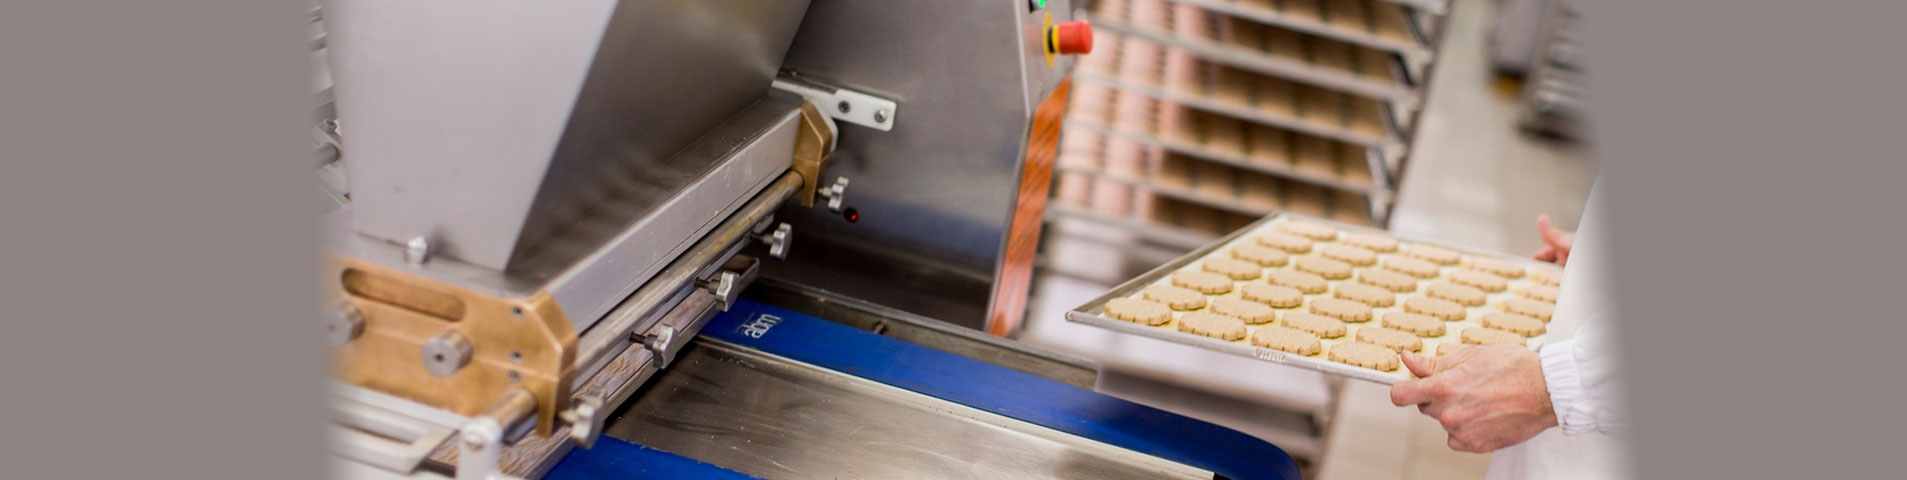 Scheduling software for food manufacturing.